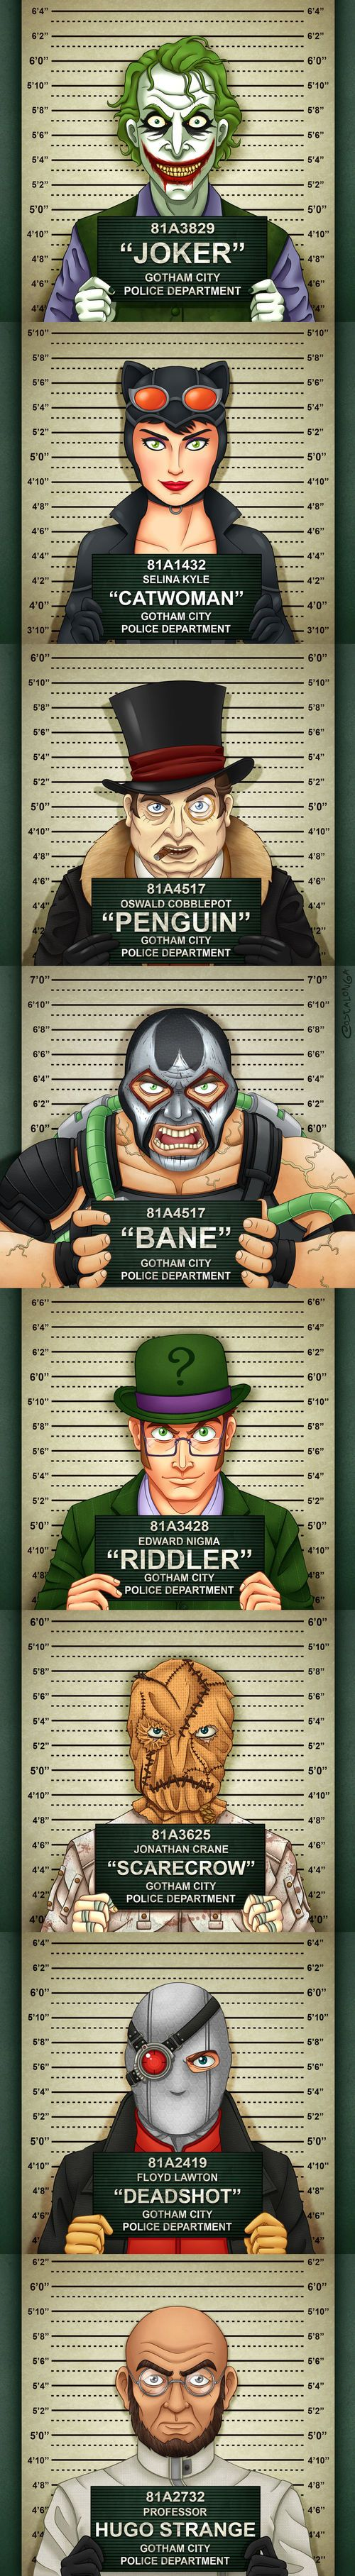 Gotham City Mugshots by Fabio Costalonga